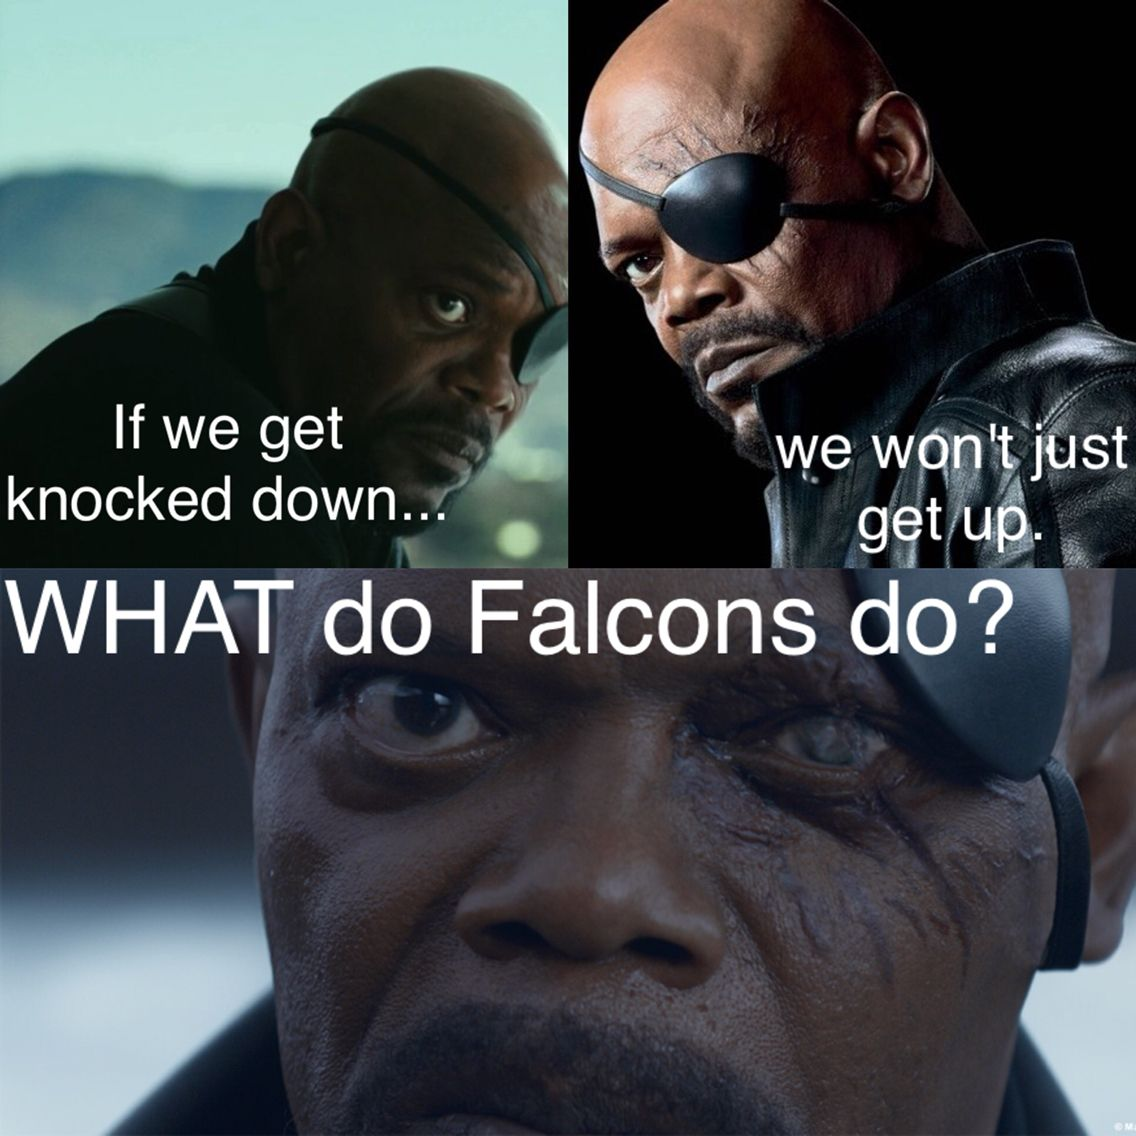 Just A Falcons Meme I Made In My Spare Time Enjoy Quinning Dirtybirdnation Riseup Atlanta Falcons Football Atlanta Falcons Wallpaper Falcons Football